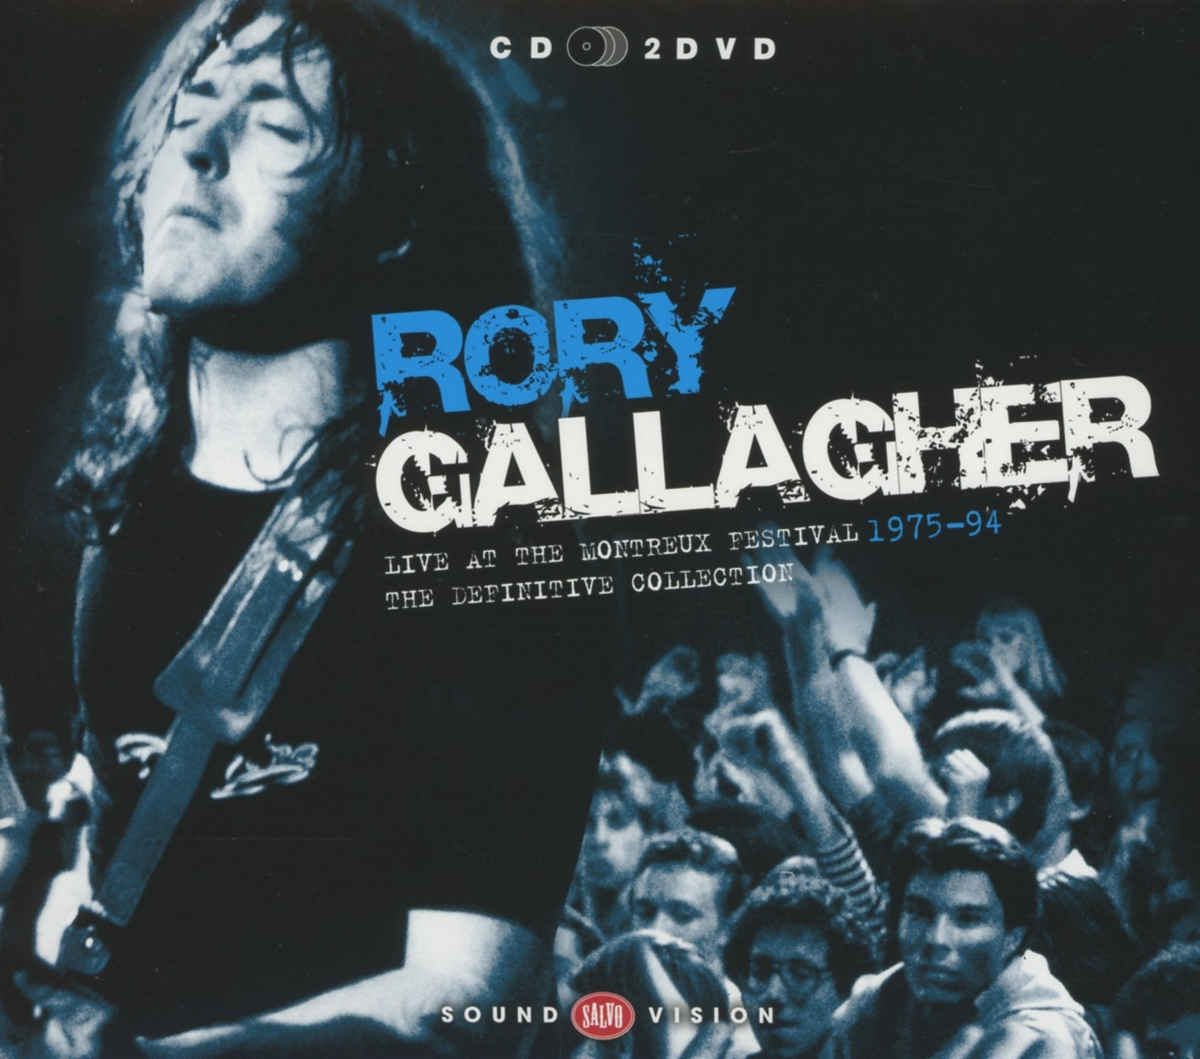 Rory-Gallagher-Live-at-the-Montreaux-Festival-1975-94